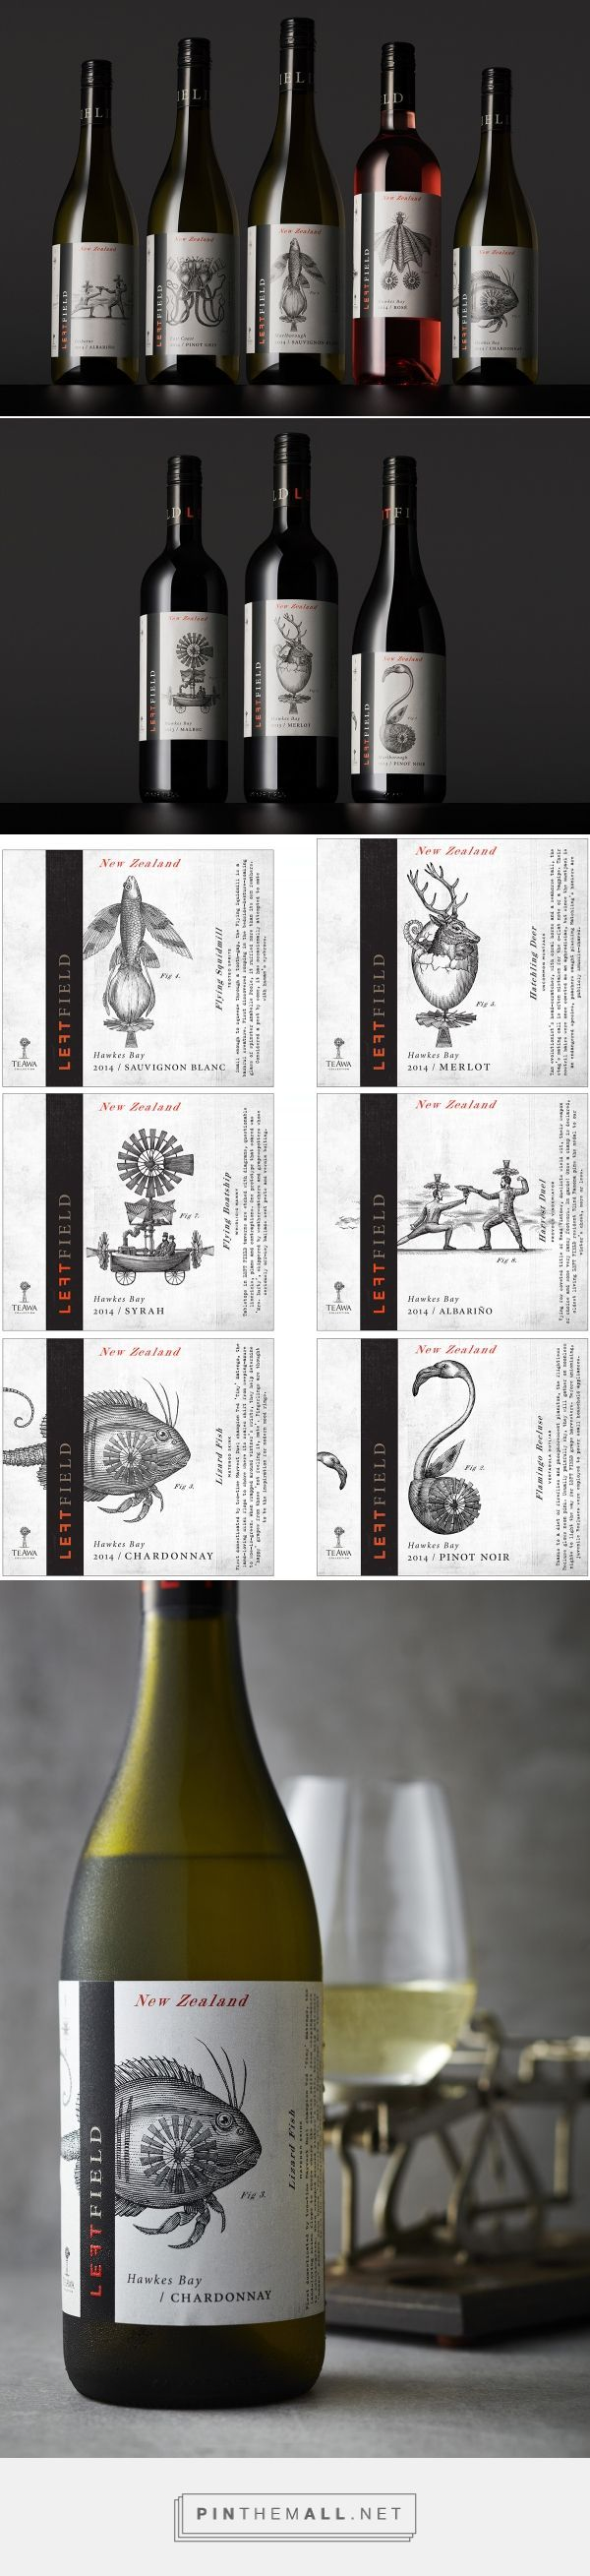 Left Field Wine Label Illustrations by Steven Noble on Behance curated by Packaging Diva PD. Illustrated wine packaging fun. #taninotanino